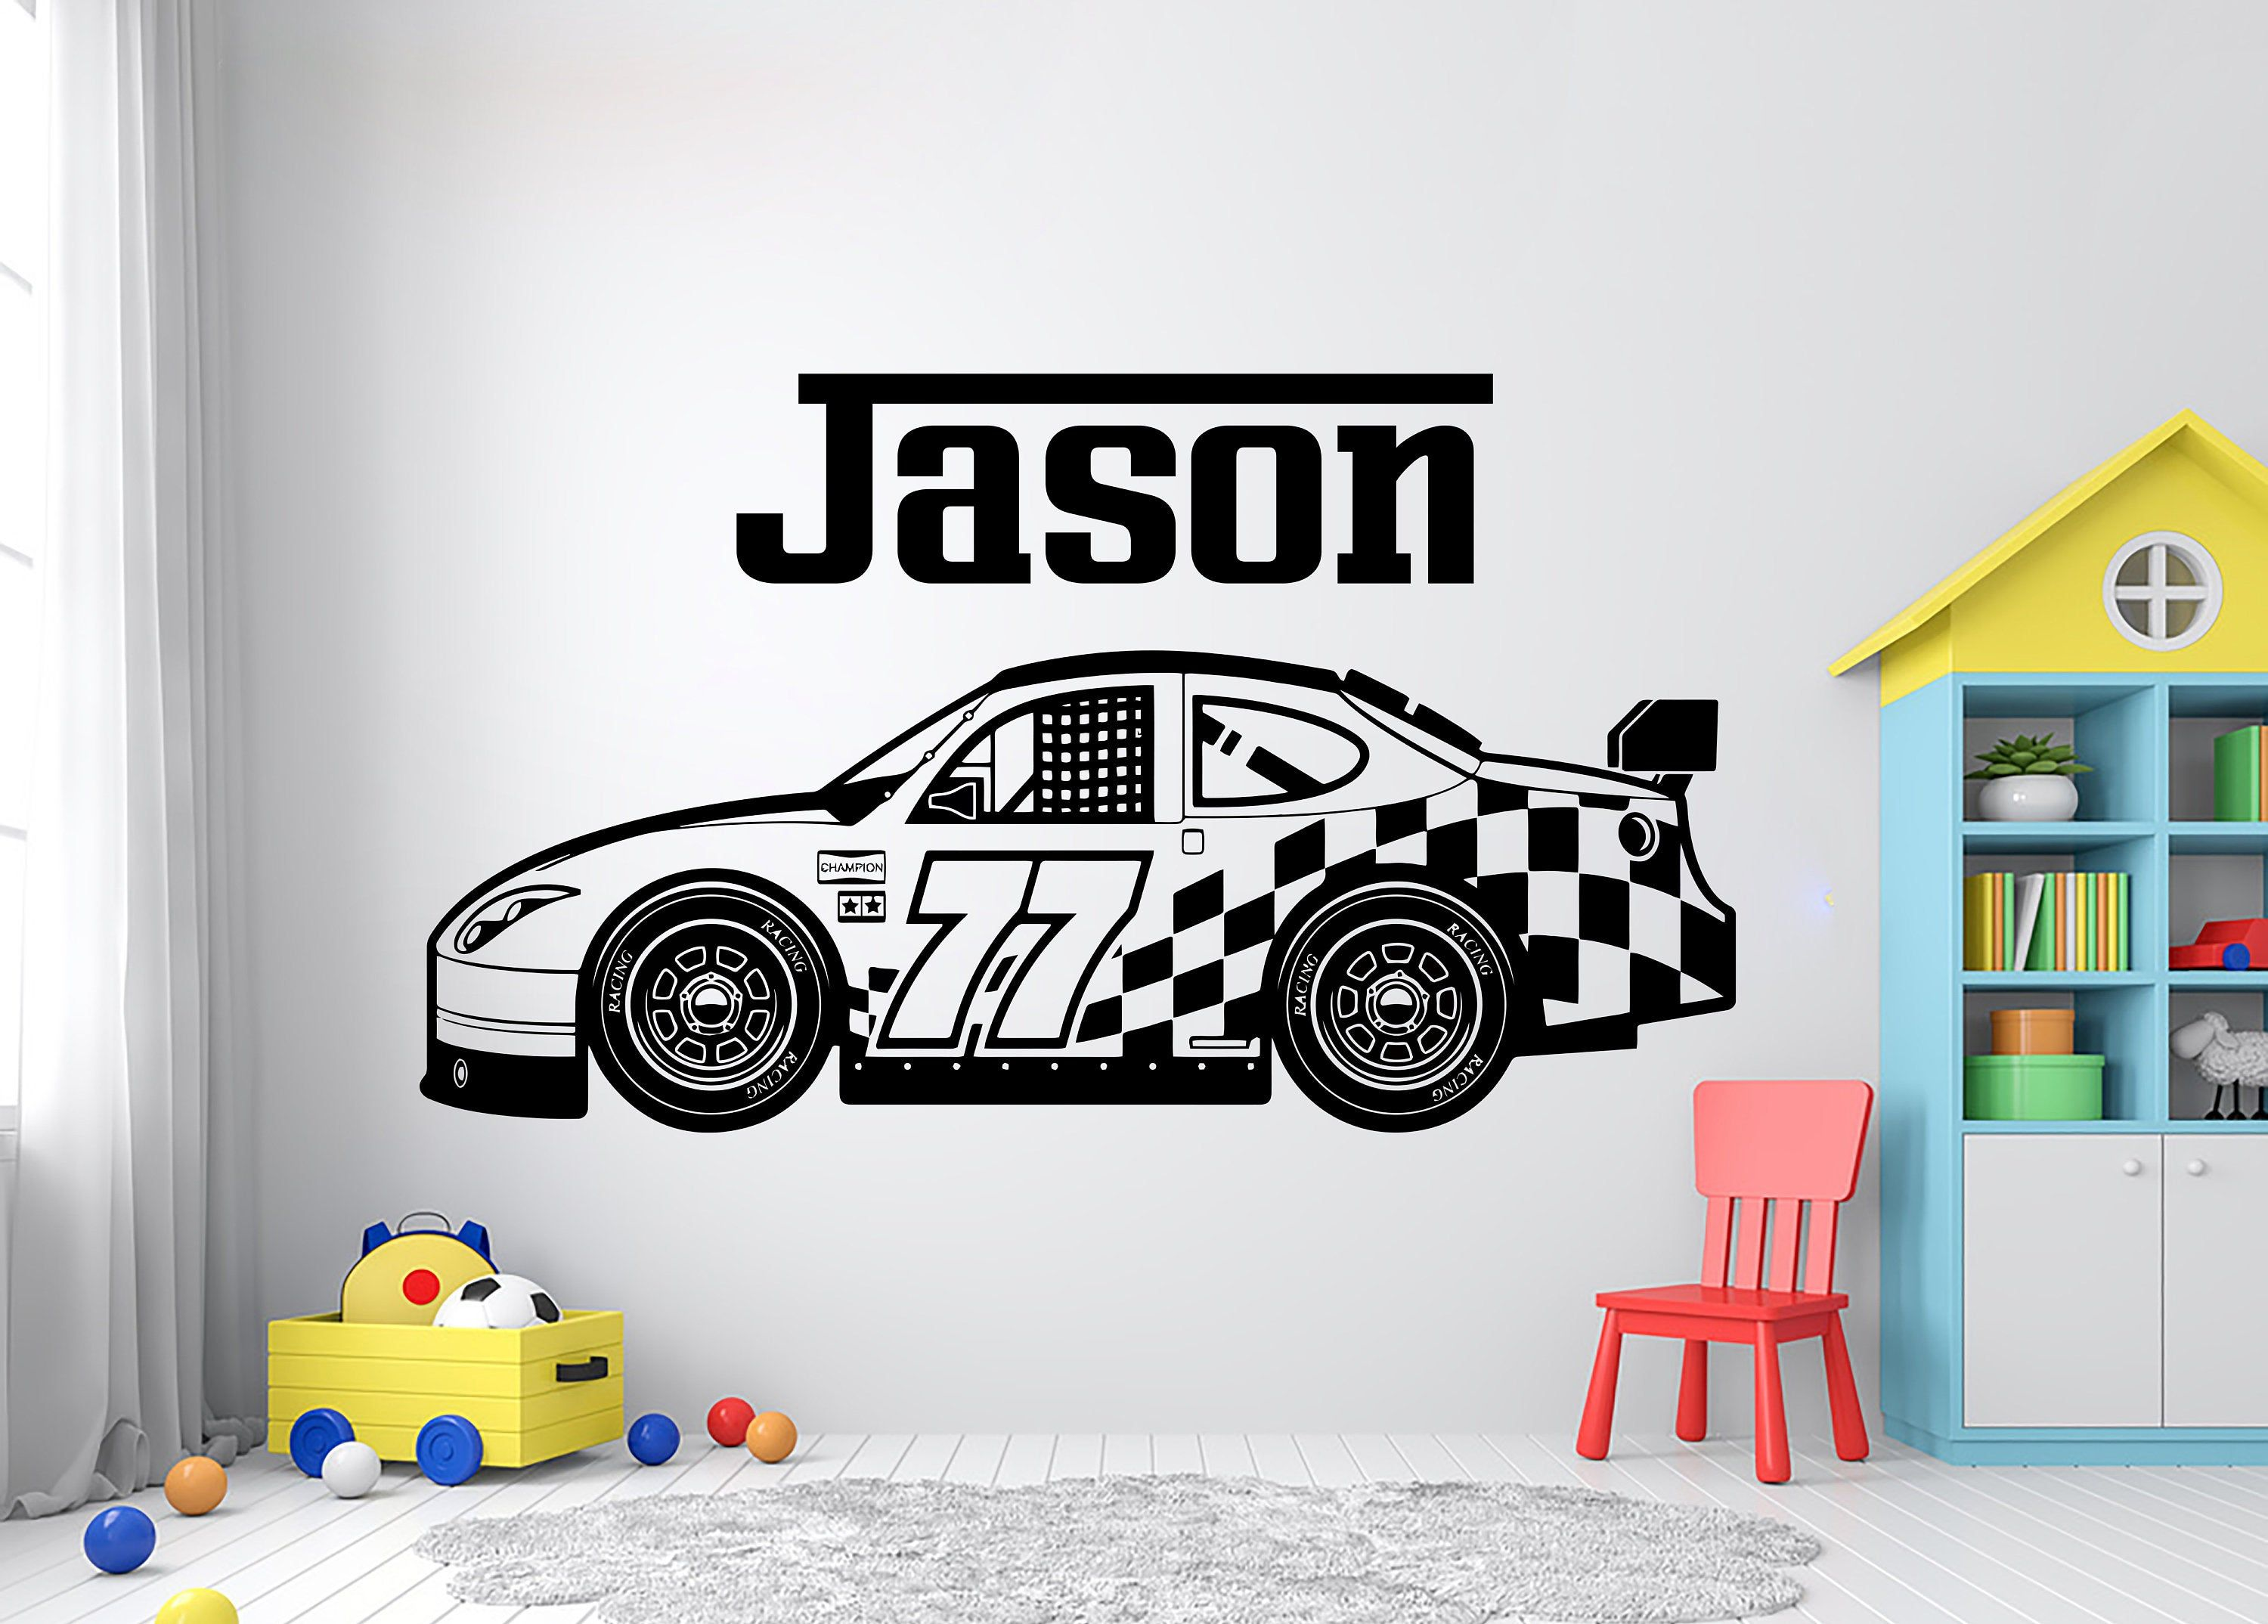 Personalized Name Racing Car Wall Decal Race Player Decal Custom Name Racing Vehicle Vinyl Wall Sticke Vinyl Wall Art Decals Vinyl Wall Stickers Decal Wall Art